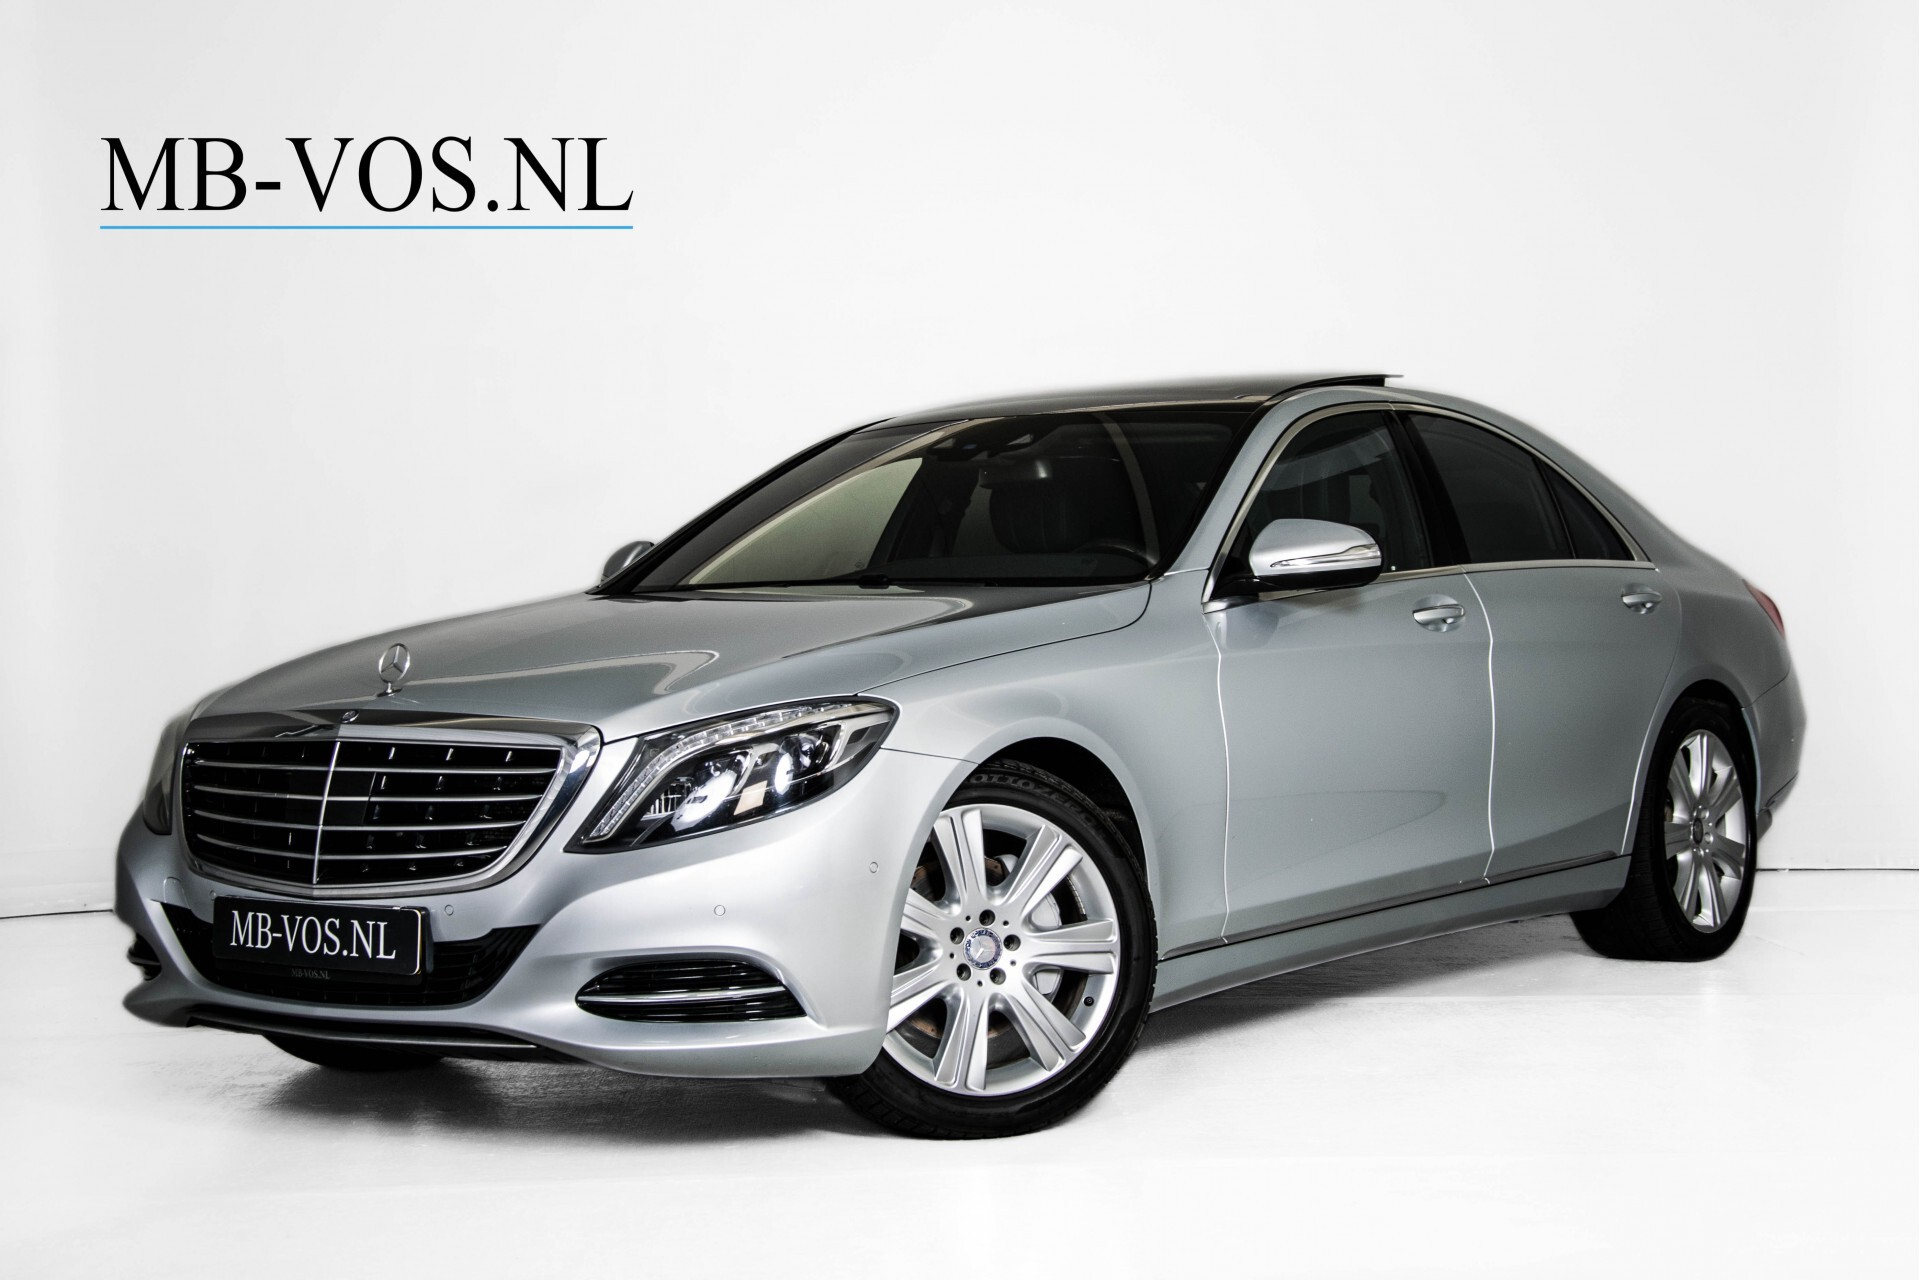 Mercedes-Benz S-Klasse 350 Bluetec Exclusive Panorama/Massage/Keyless/Distronic/Standkachel Aut7 Foto 1